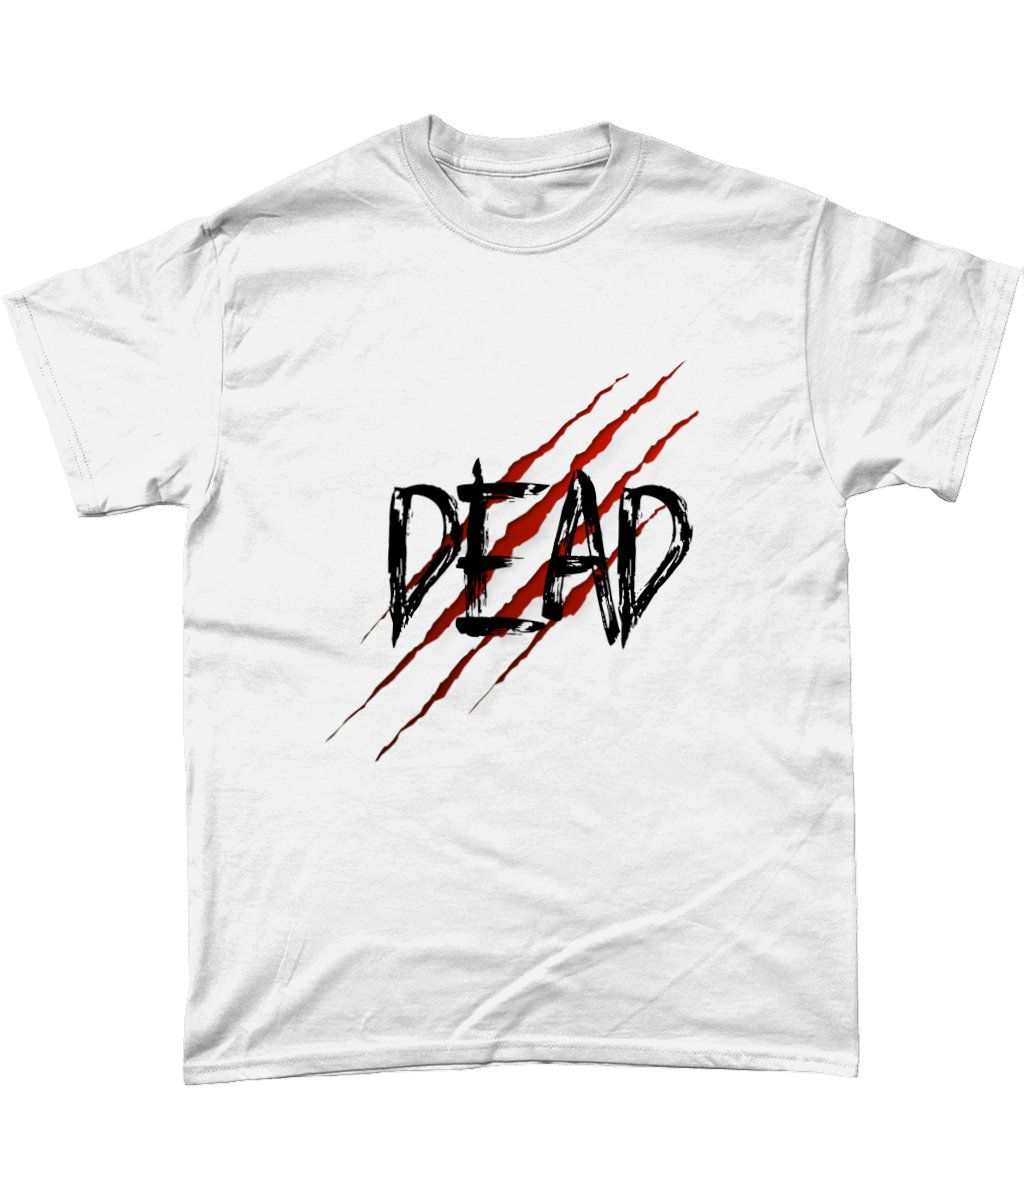 DEAD, Gothic, Emo style  grunge  Heavy Cotton T-Shirt, dead inside #emoclothing #gothic #gothicfashion #zombie #zombieland #zombieapocalypse #tees  #teeshirts #dead #deadinside